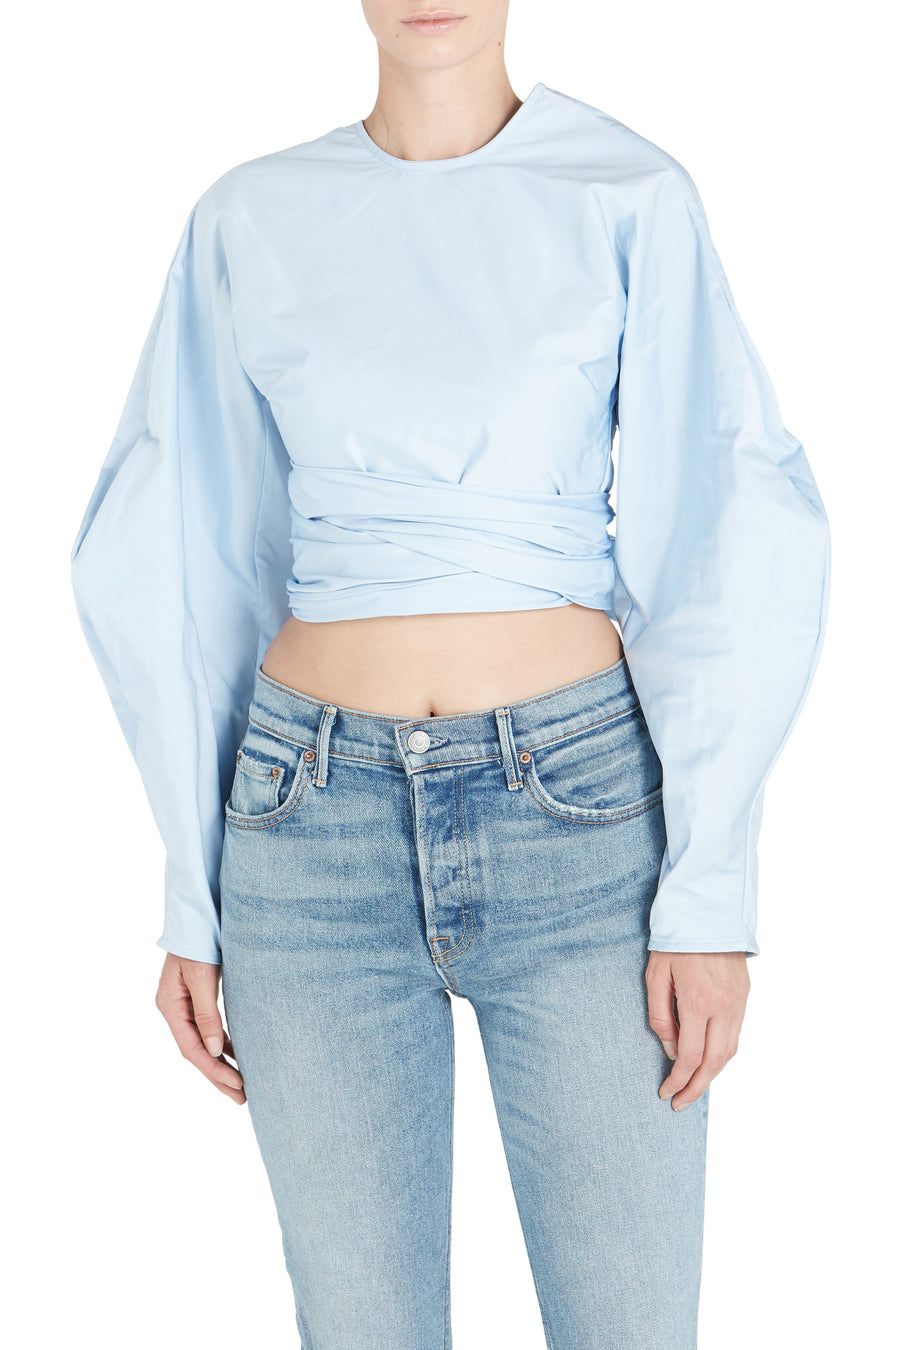 LASSO CROP WRAPPED TOP